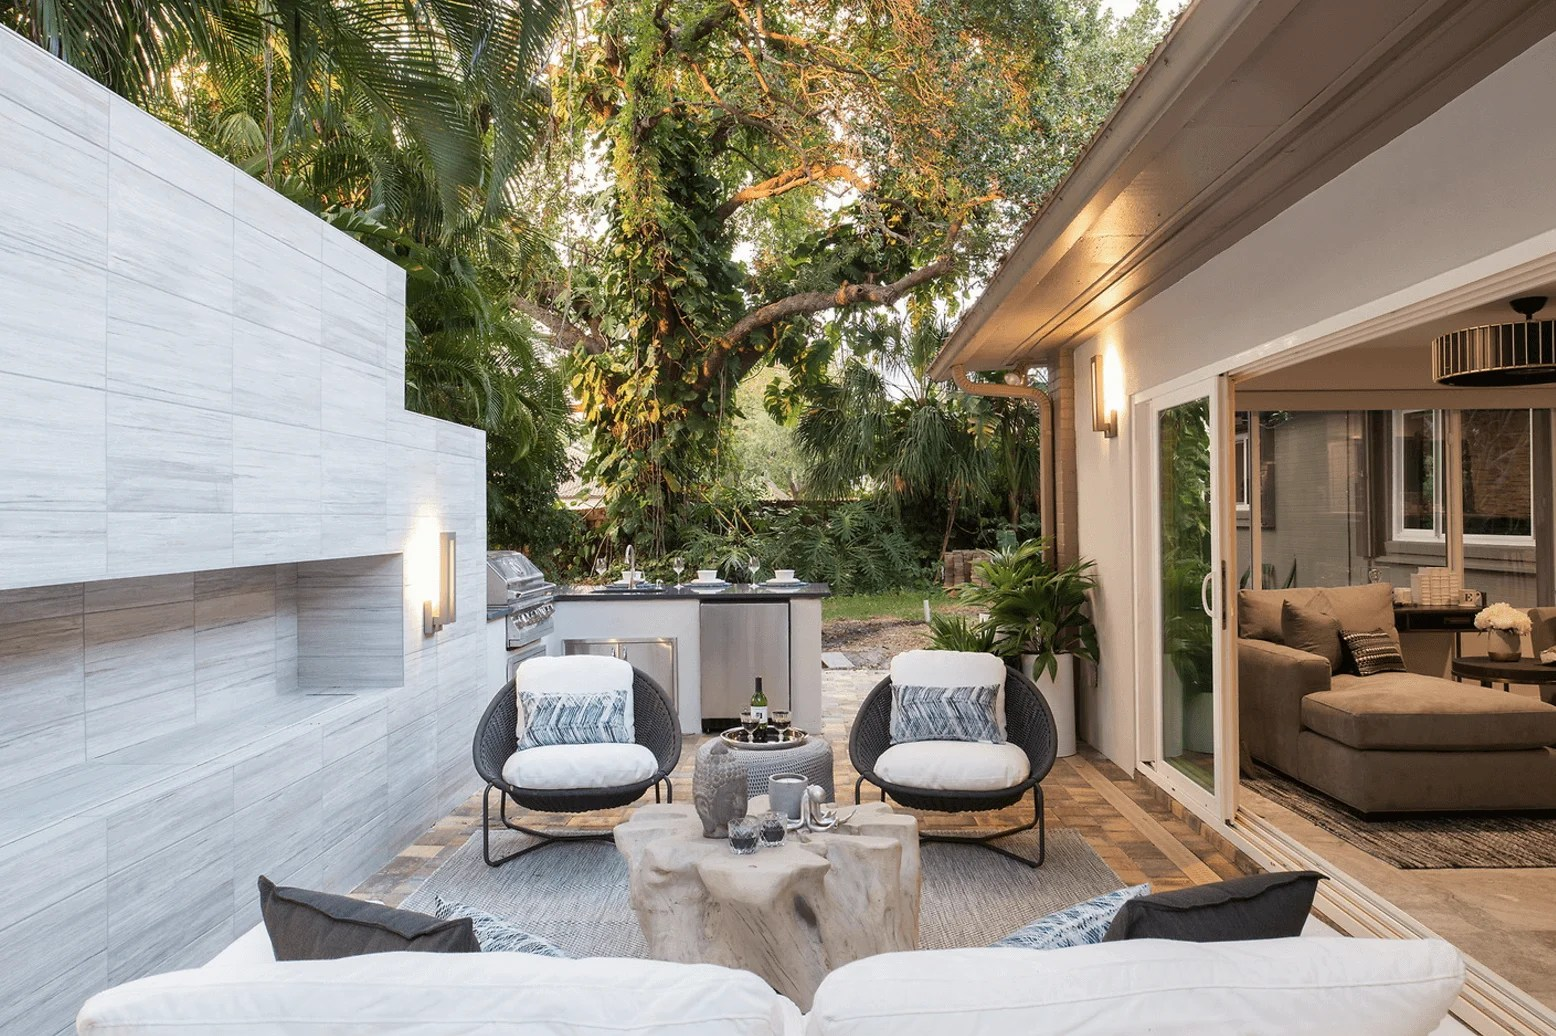 5 Design Essentials For Your Outdoor Living Space ... on Outdoor Living Designer  id=68076